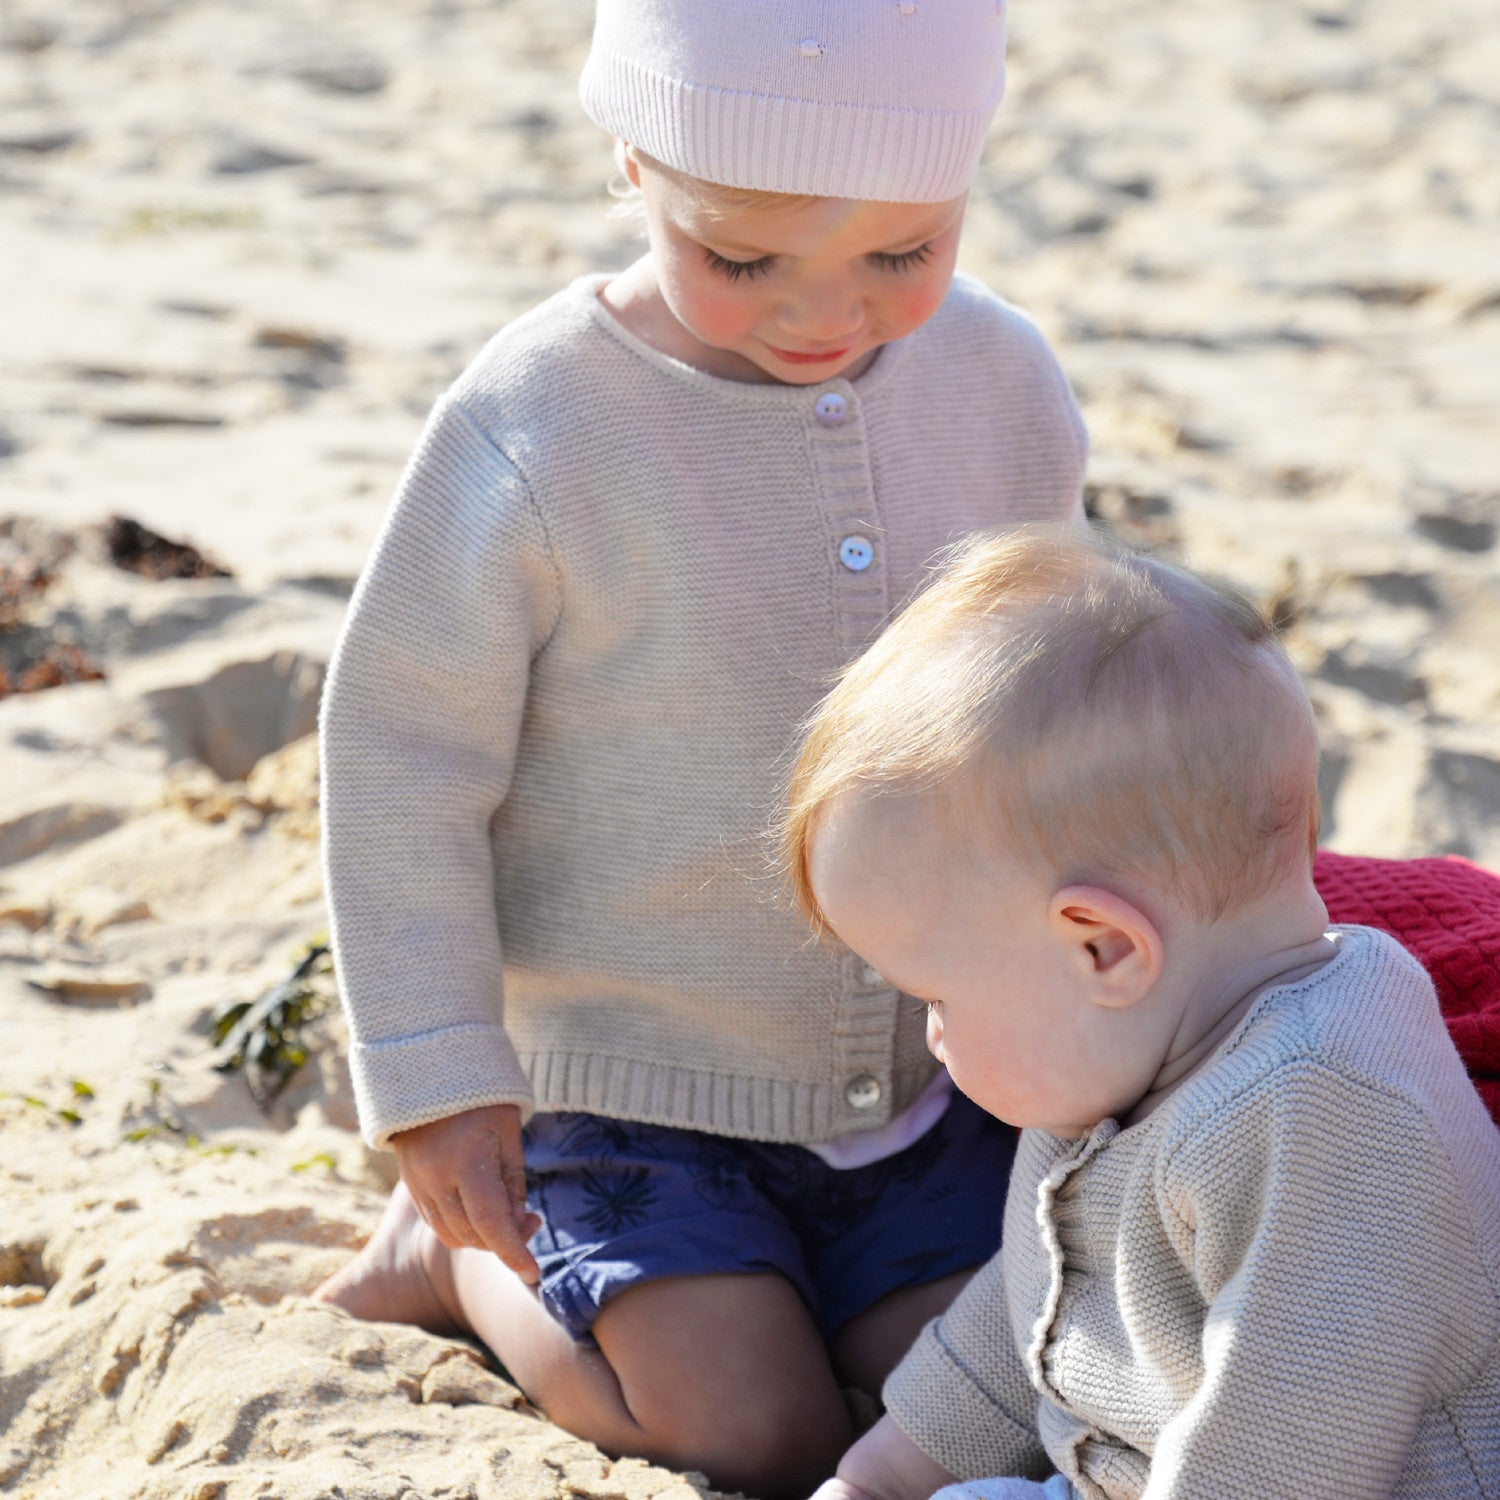 girls on beach in oatmeal baby cardigans